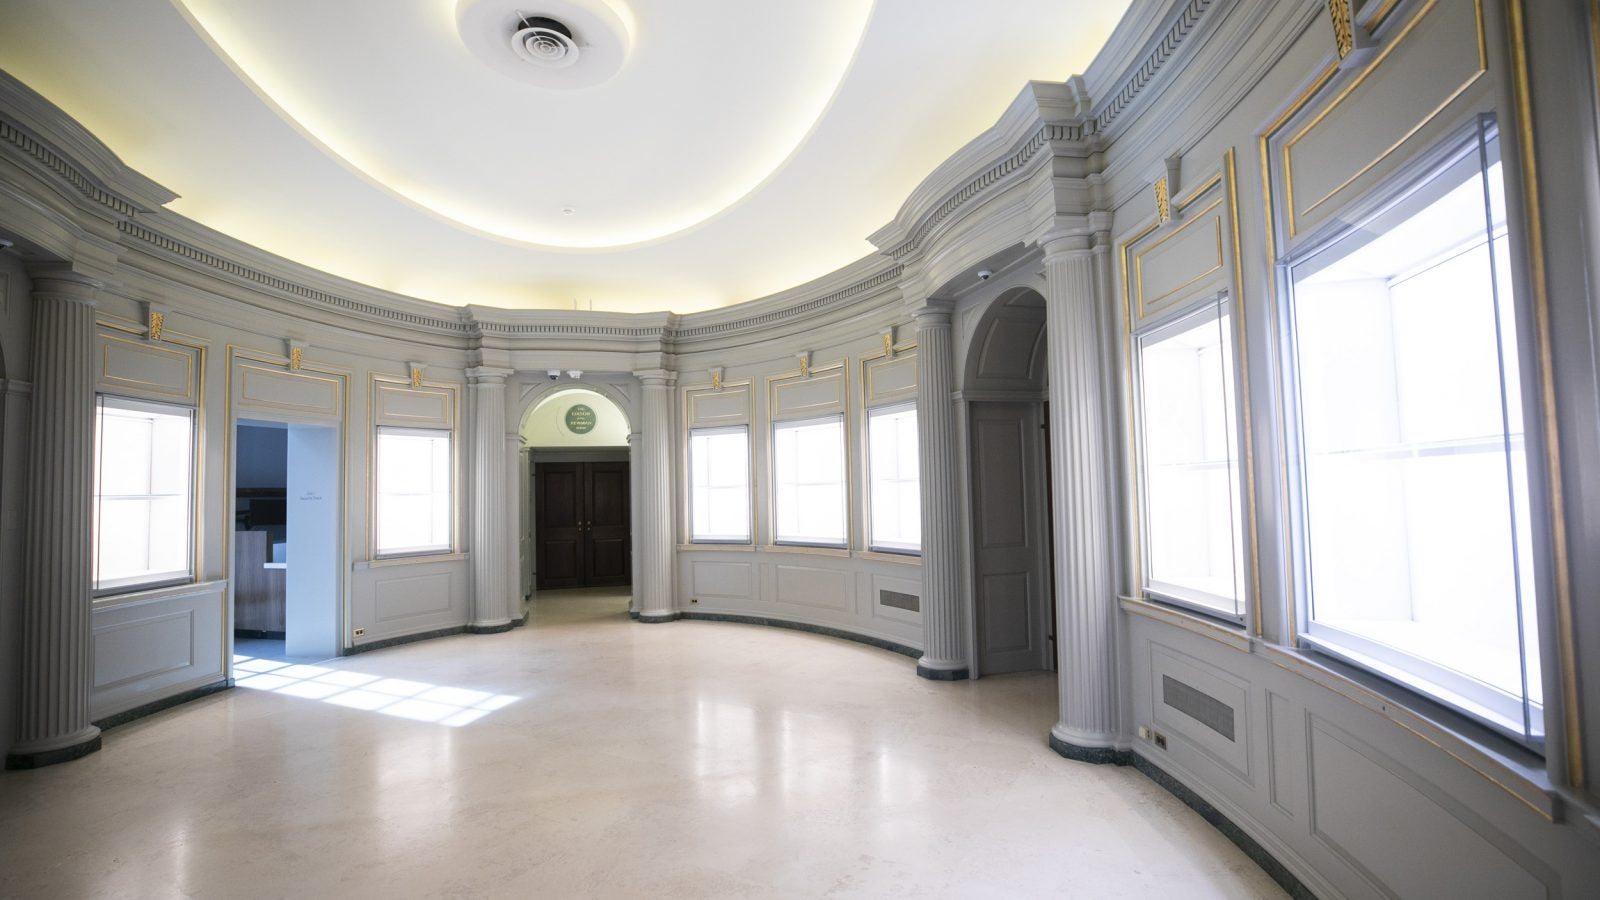 The lobby is pictured.